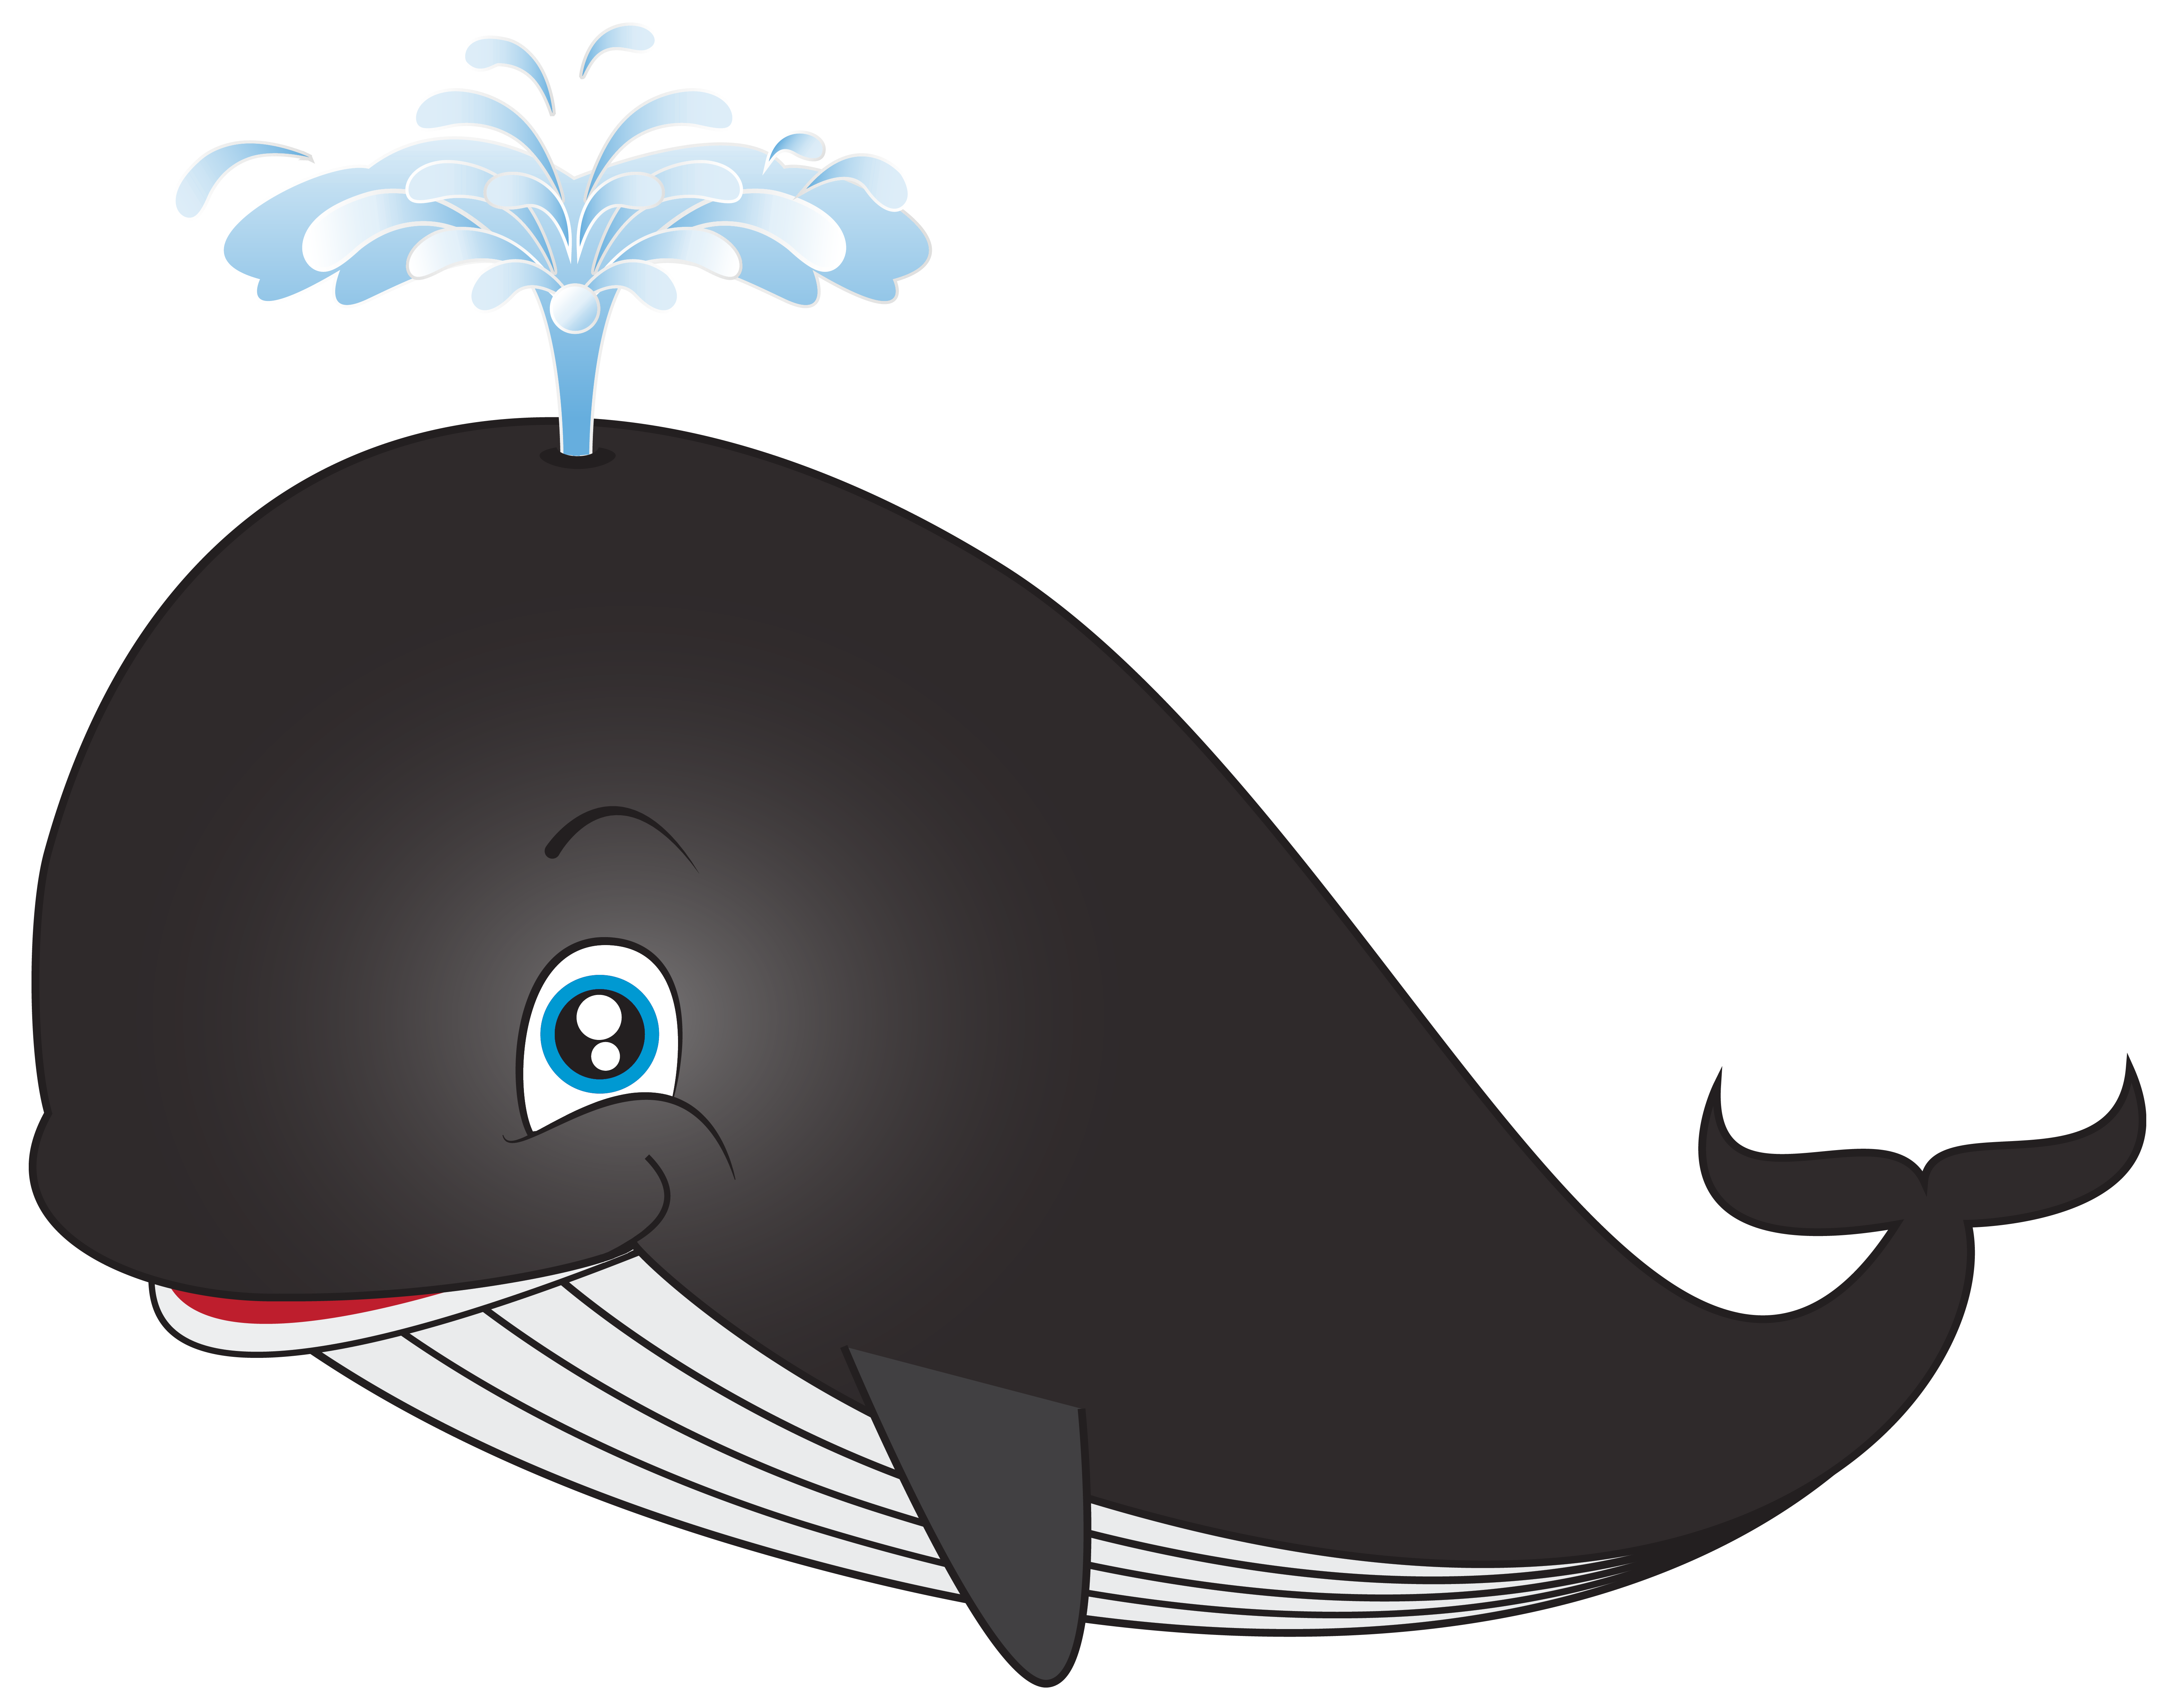 Purple fish eating worm clipart picture black and white download Sperm whale Blue whale Clip art - BABY SHARK 6281*4932 transprent ... picture black and white download